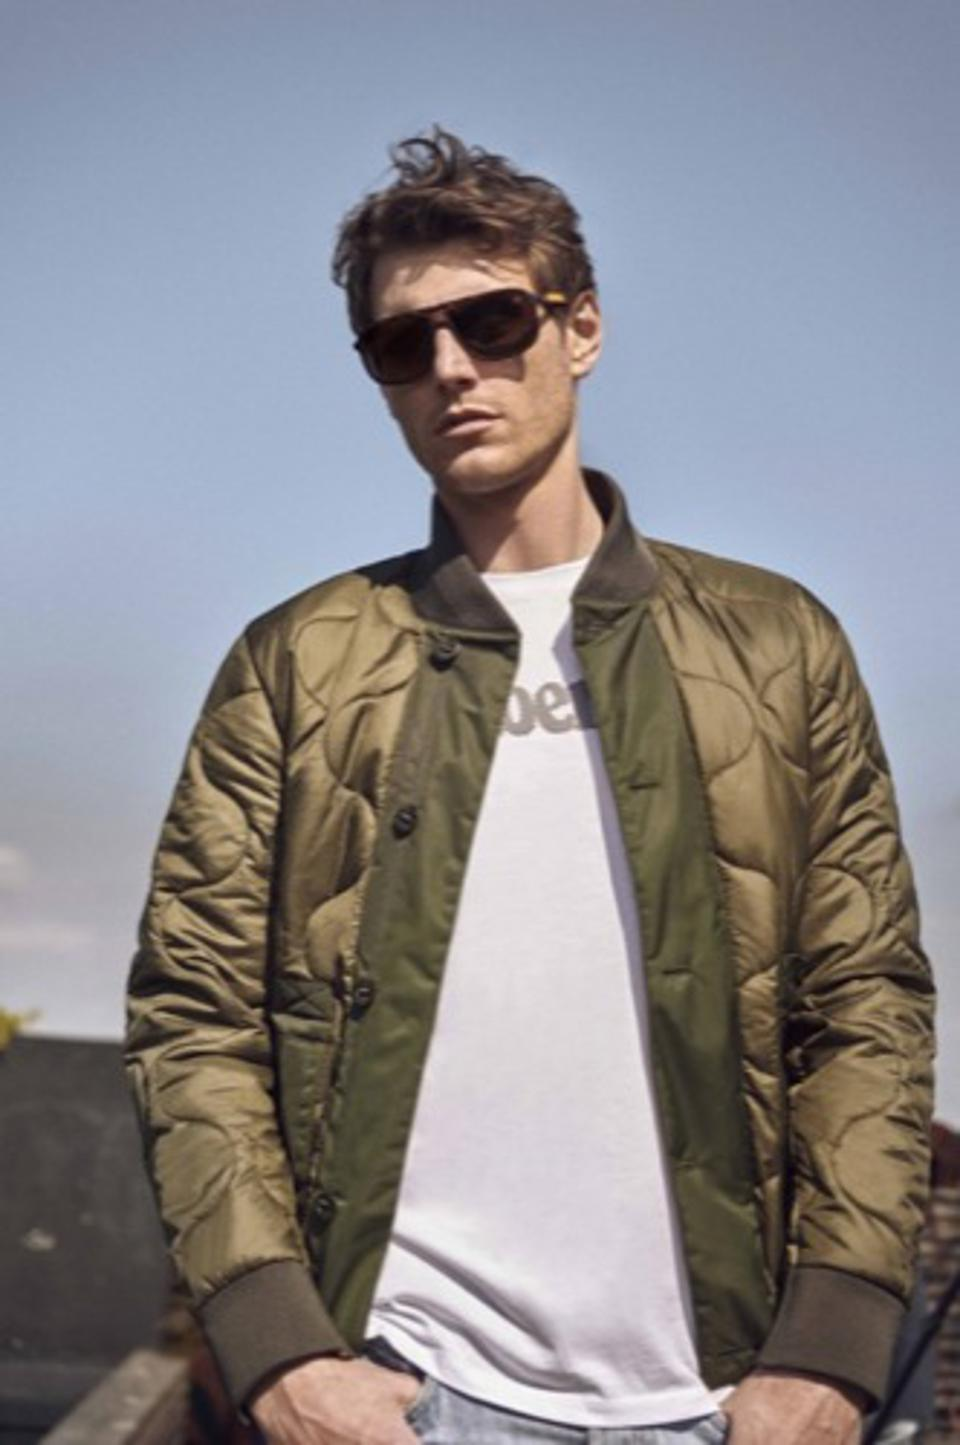 A campaign image for Timberland eyewear